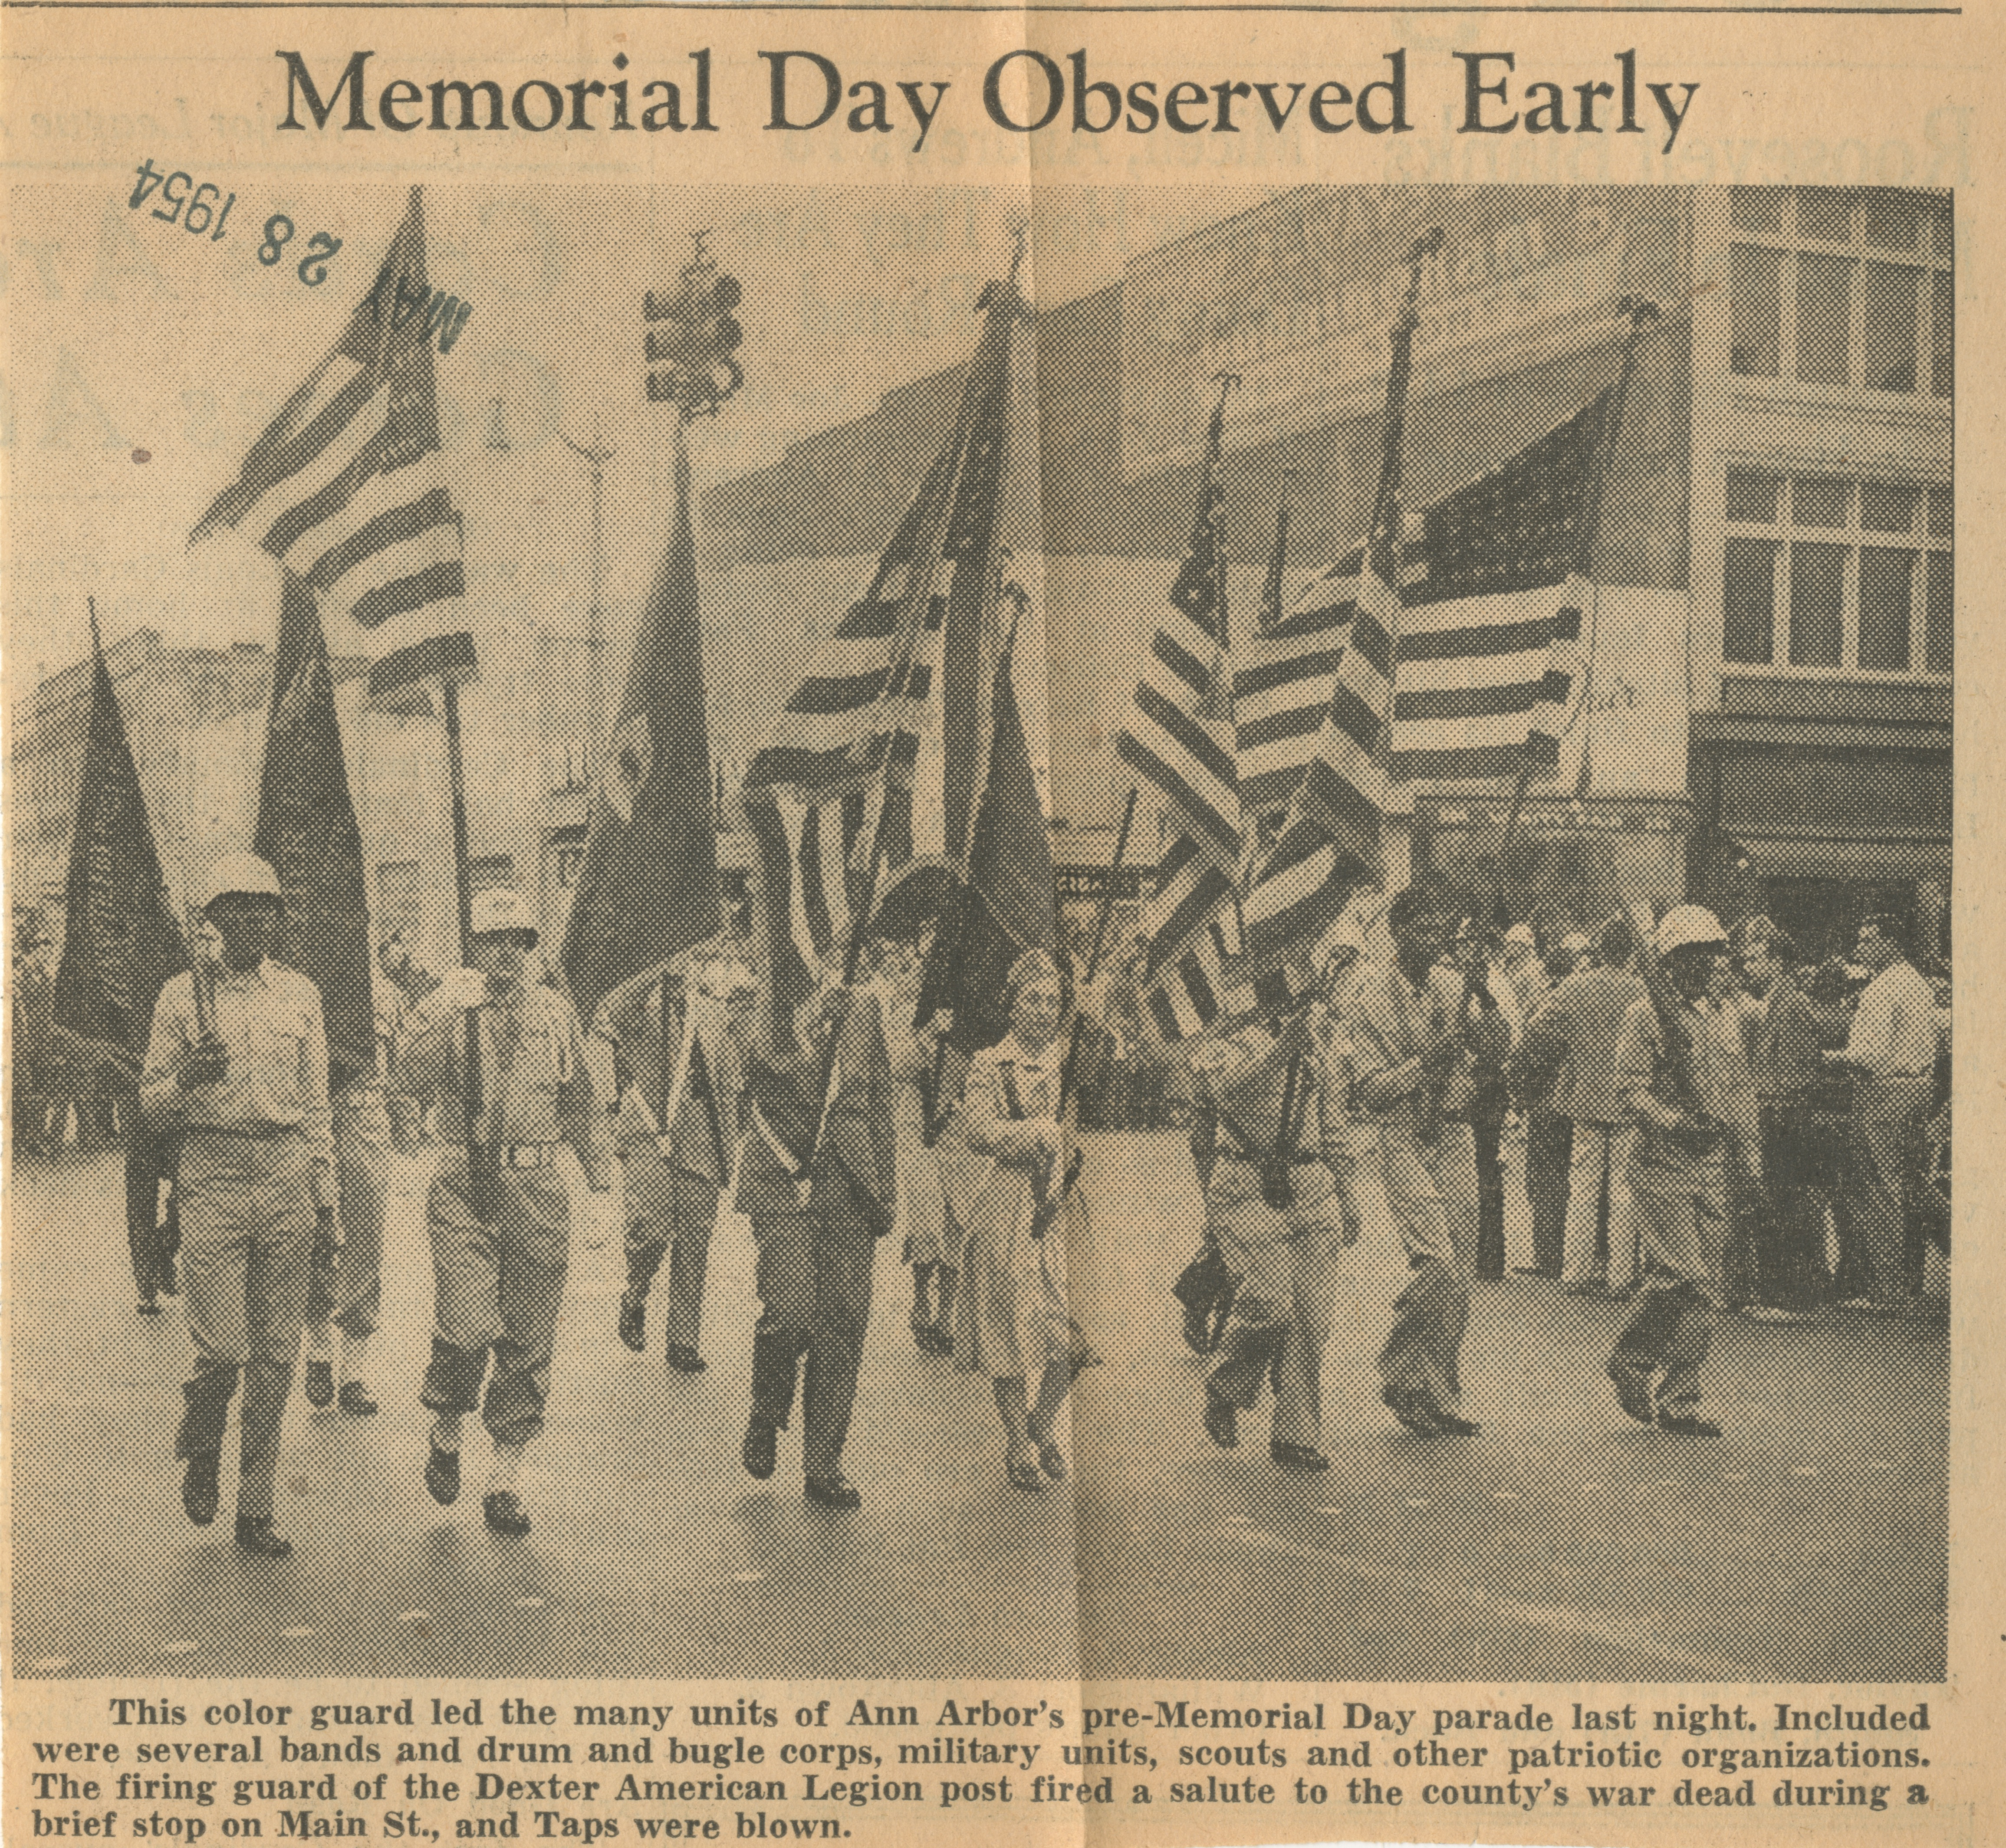 Memorial Day Observed Early image